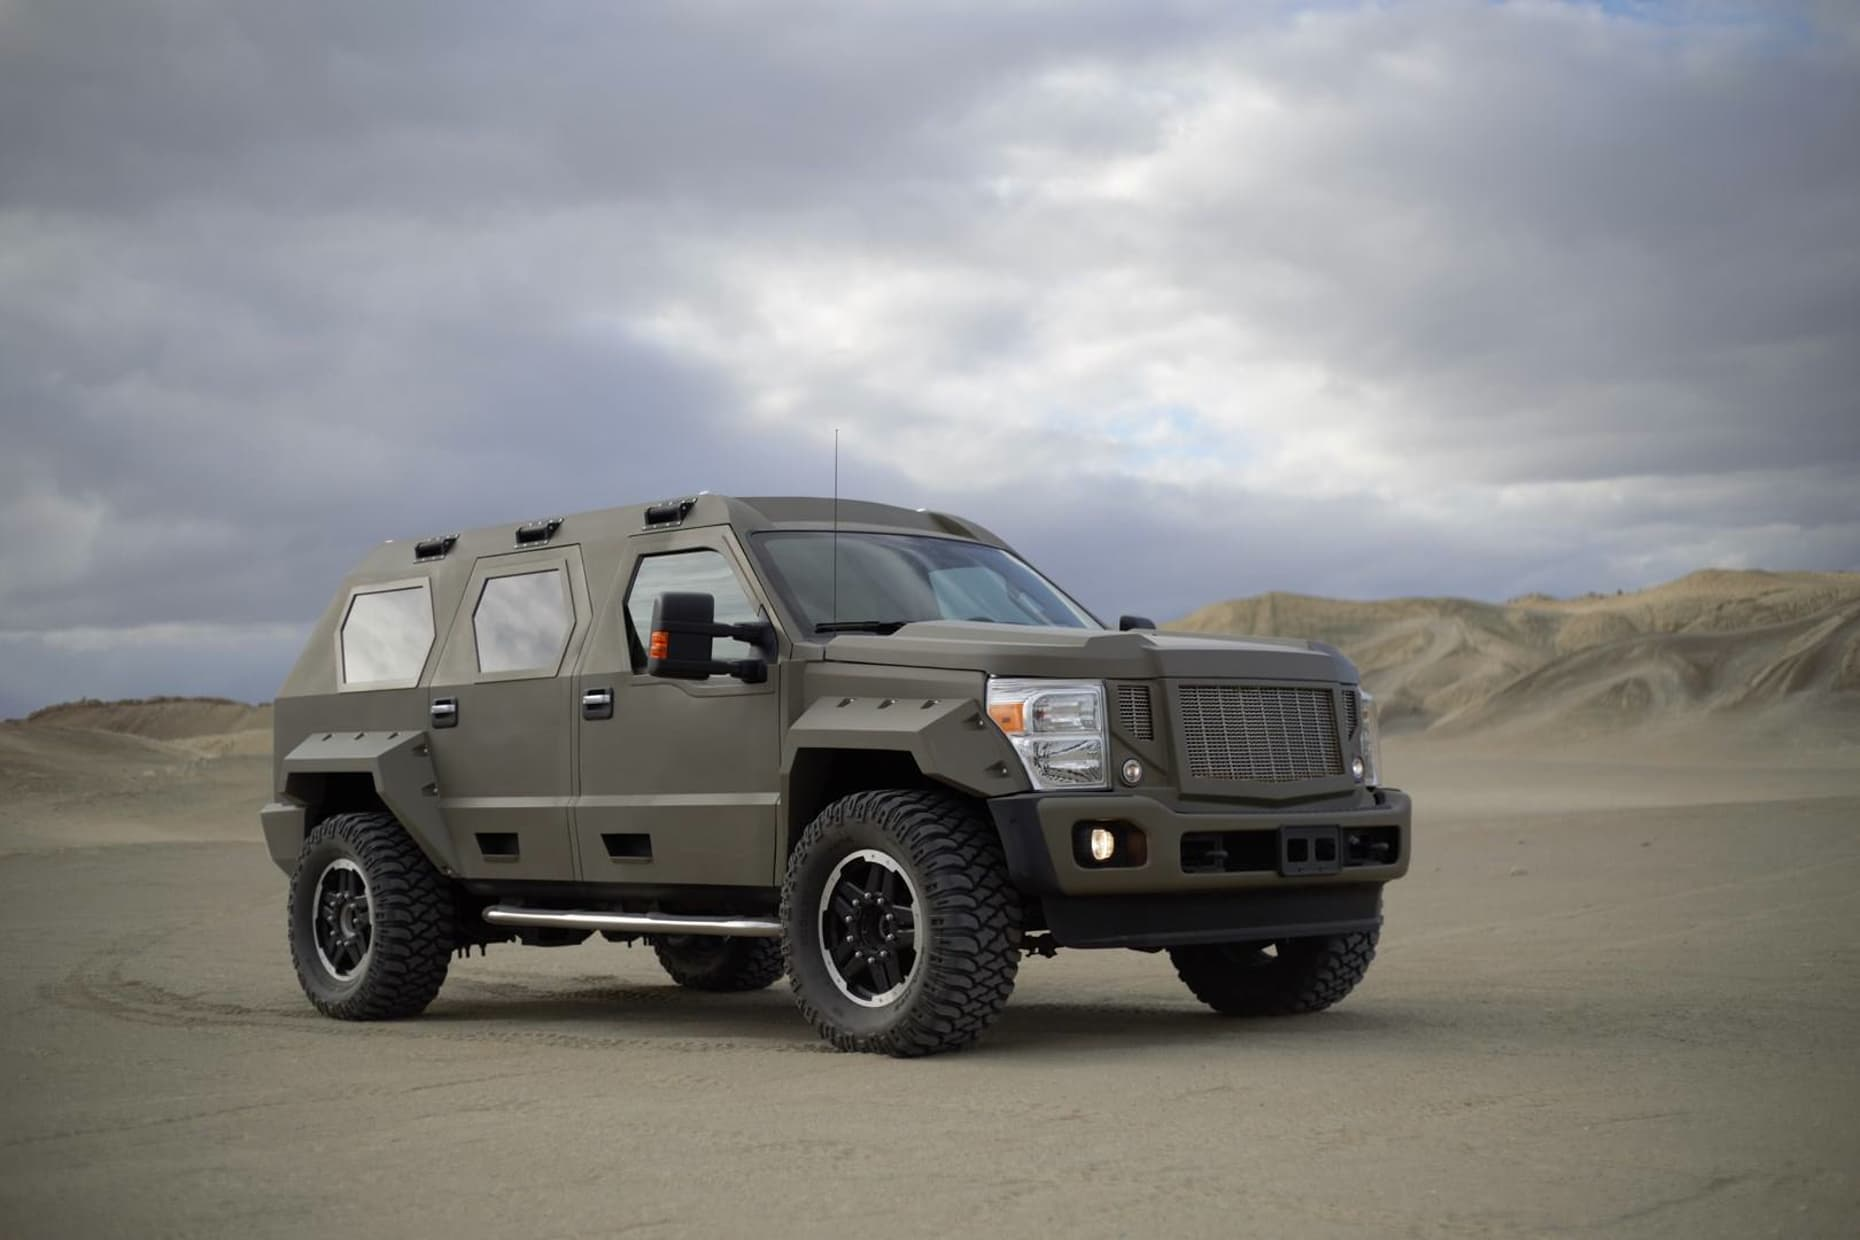 Rhino XT SUV By US Specialty Vehicles (1)